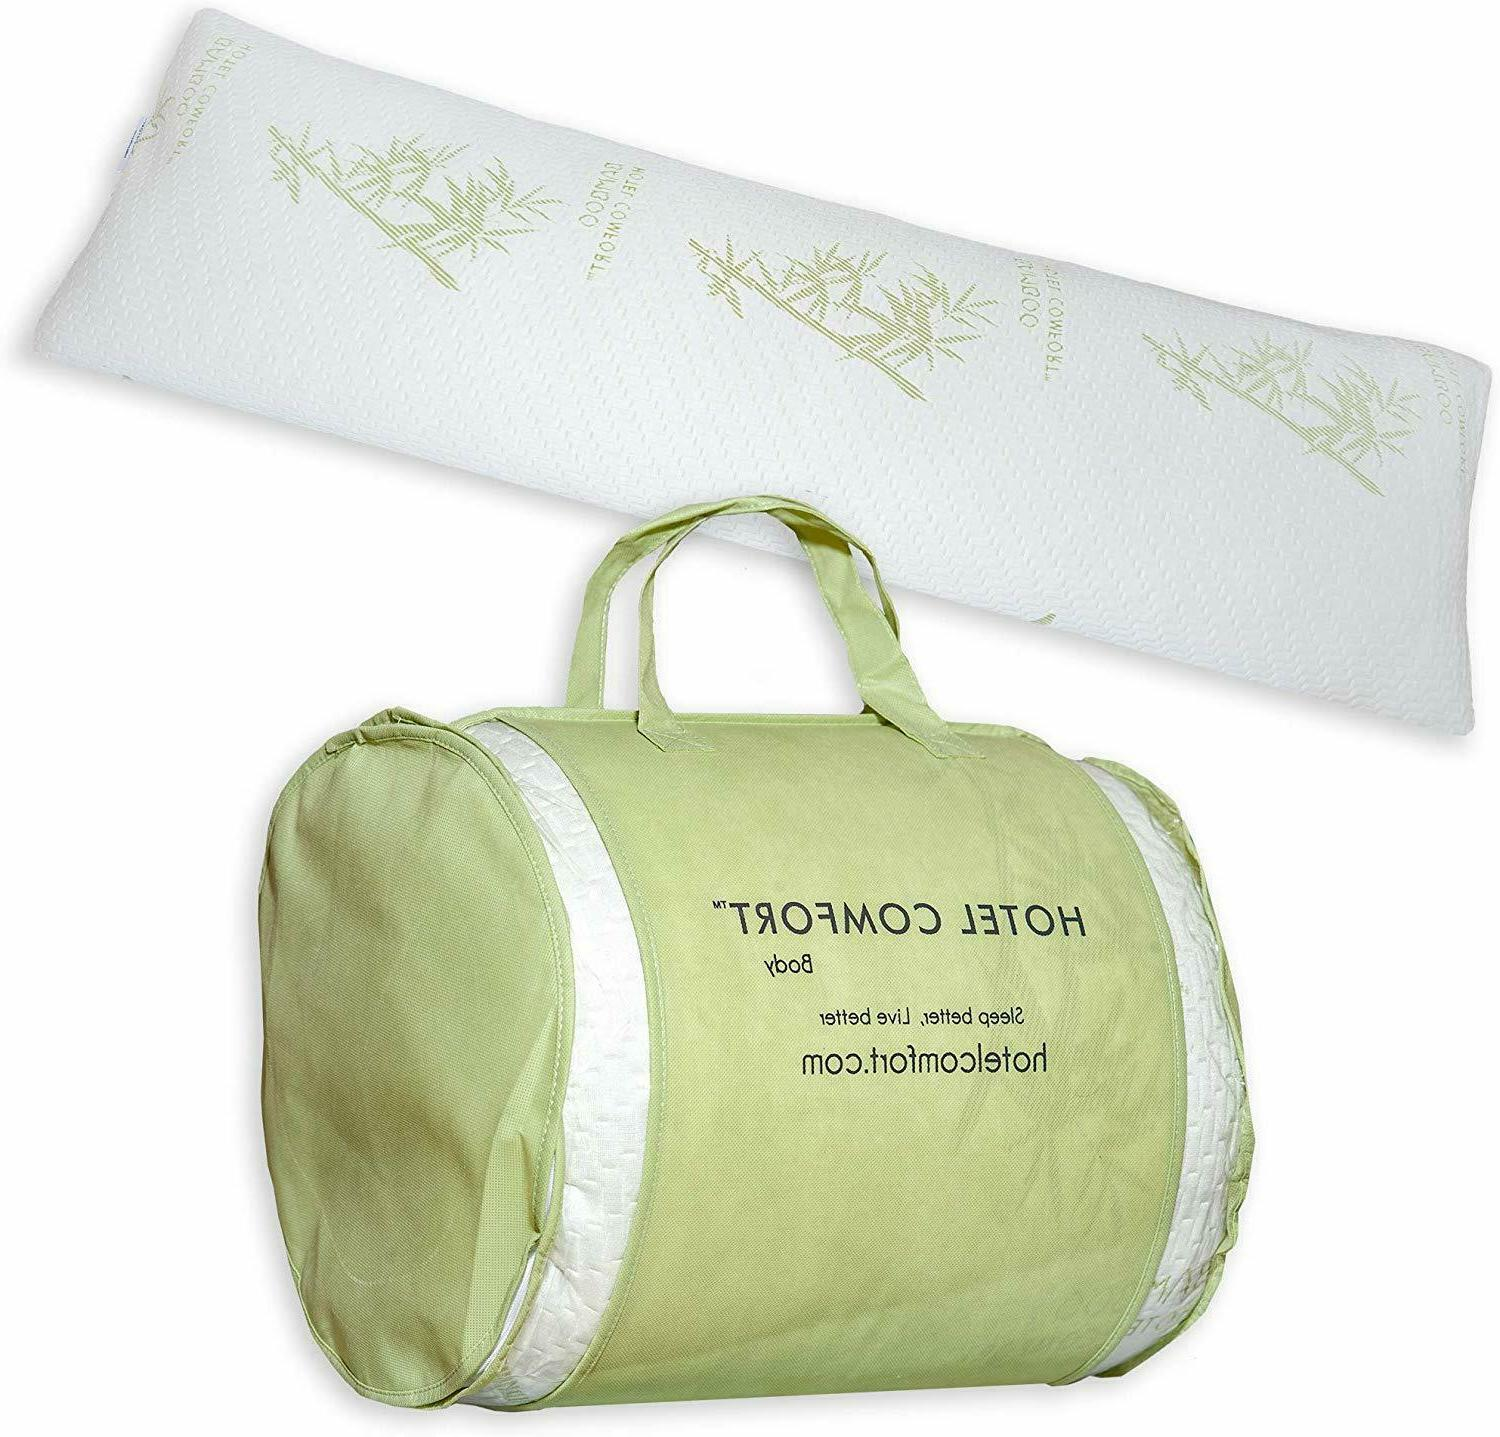 Remedy Bamboo Rayon Memory Foam Pillow